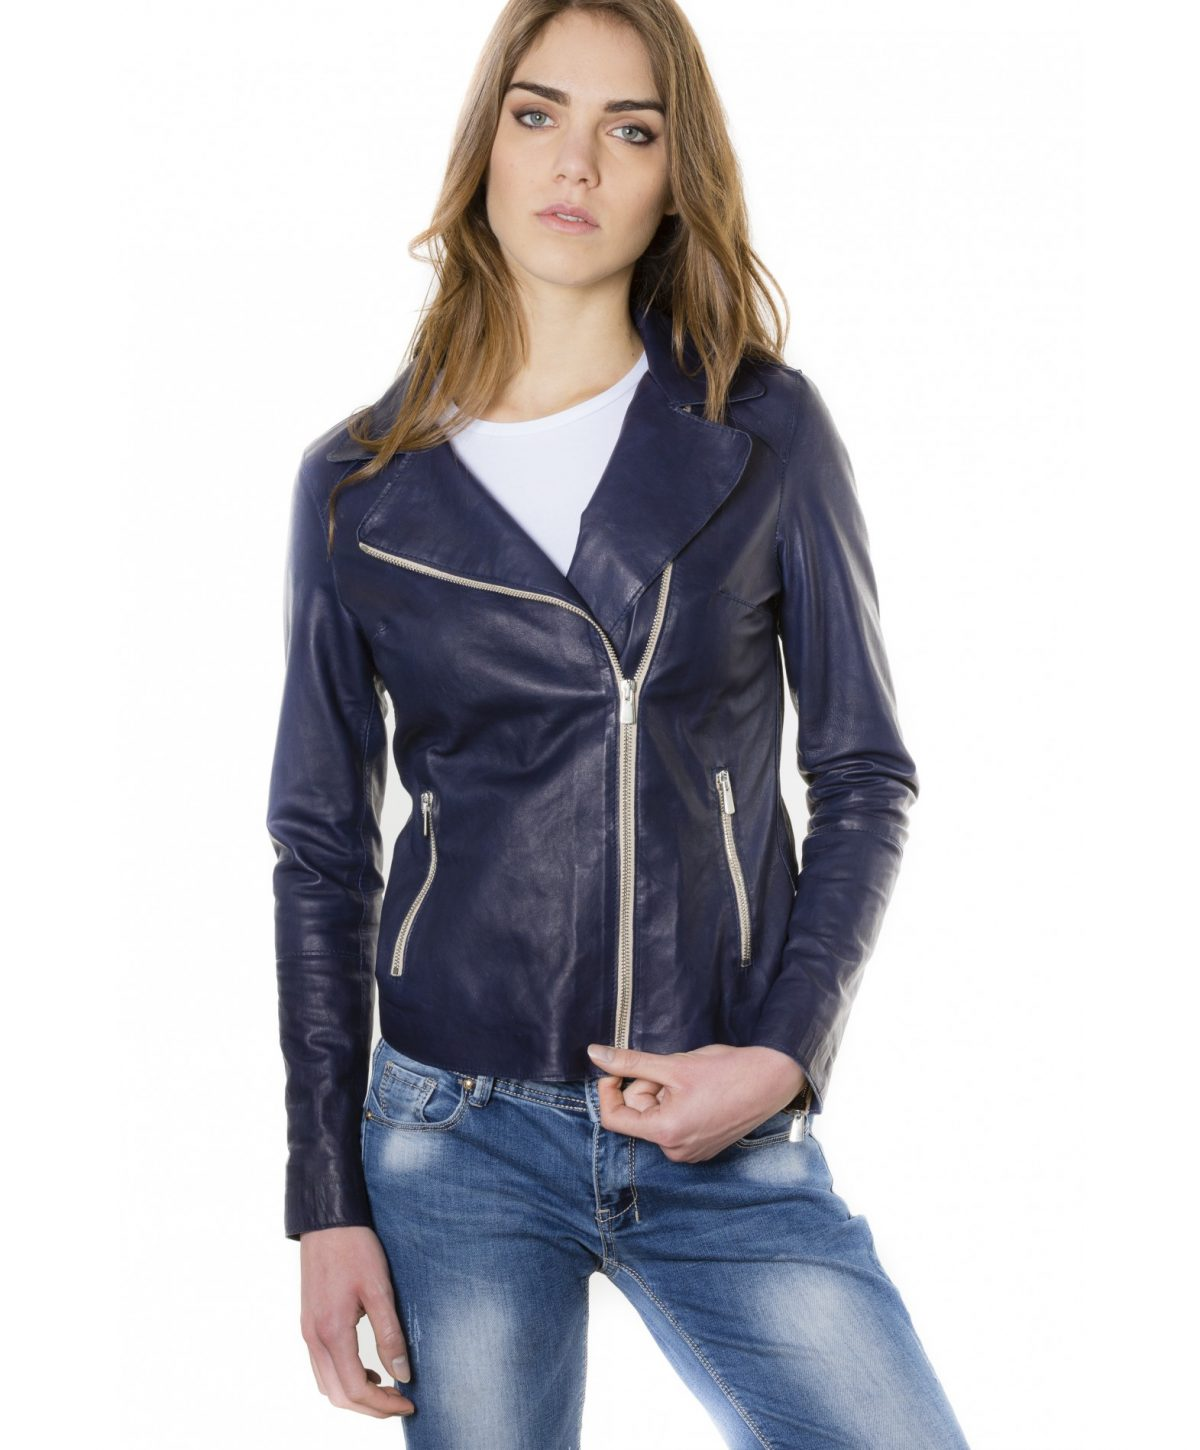 Blue Color – Lamb Leather Jacket Vintage Effect